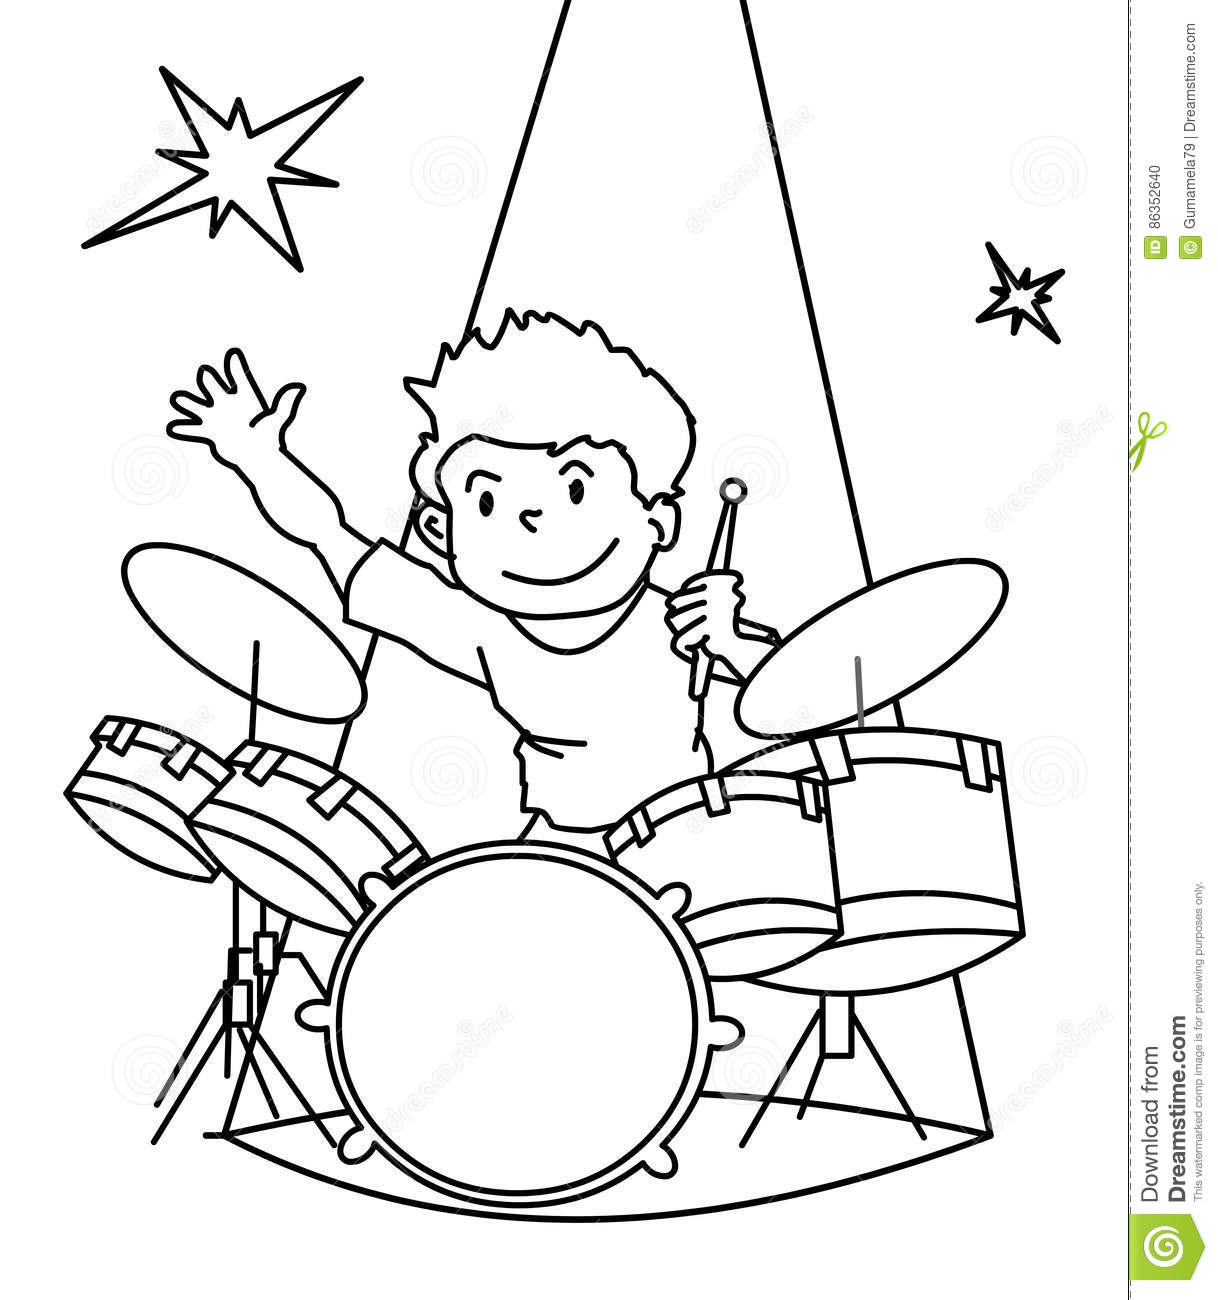 Drummer Coloring Page Stock Illustration Illustration Of Girl